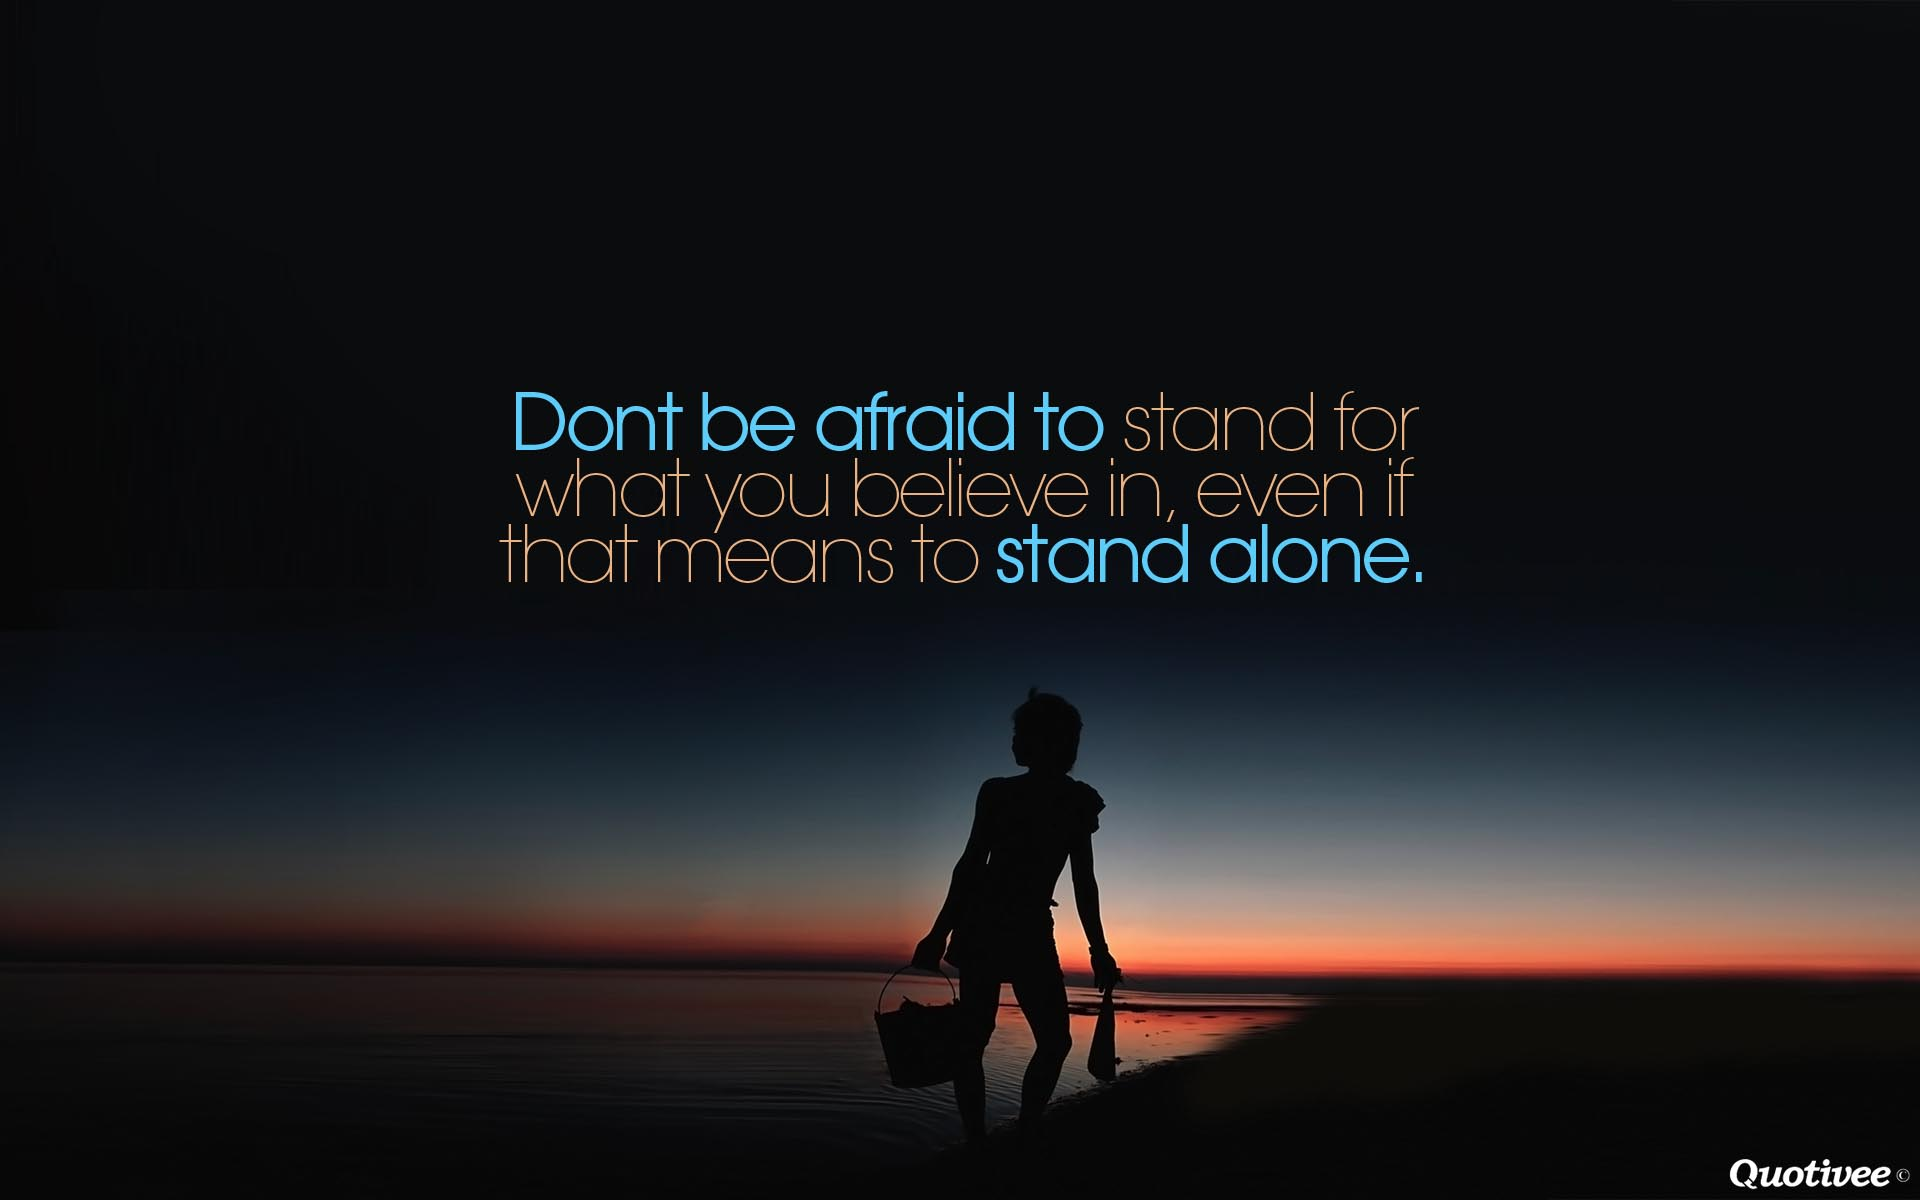 Don't be Afraid to Stand Alone - Inspirational Quotes   Quotivee